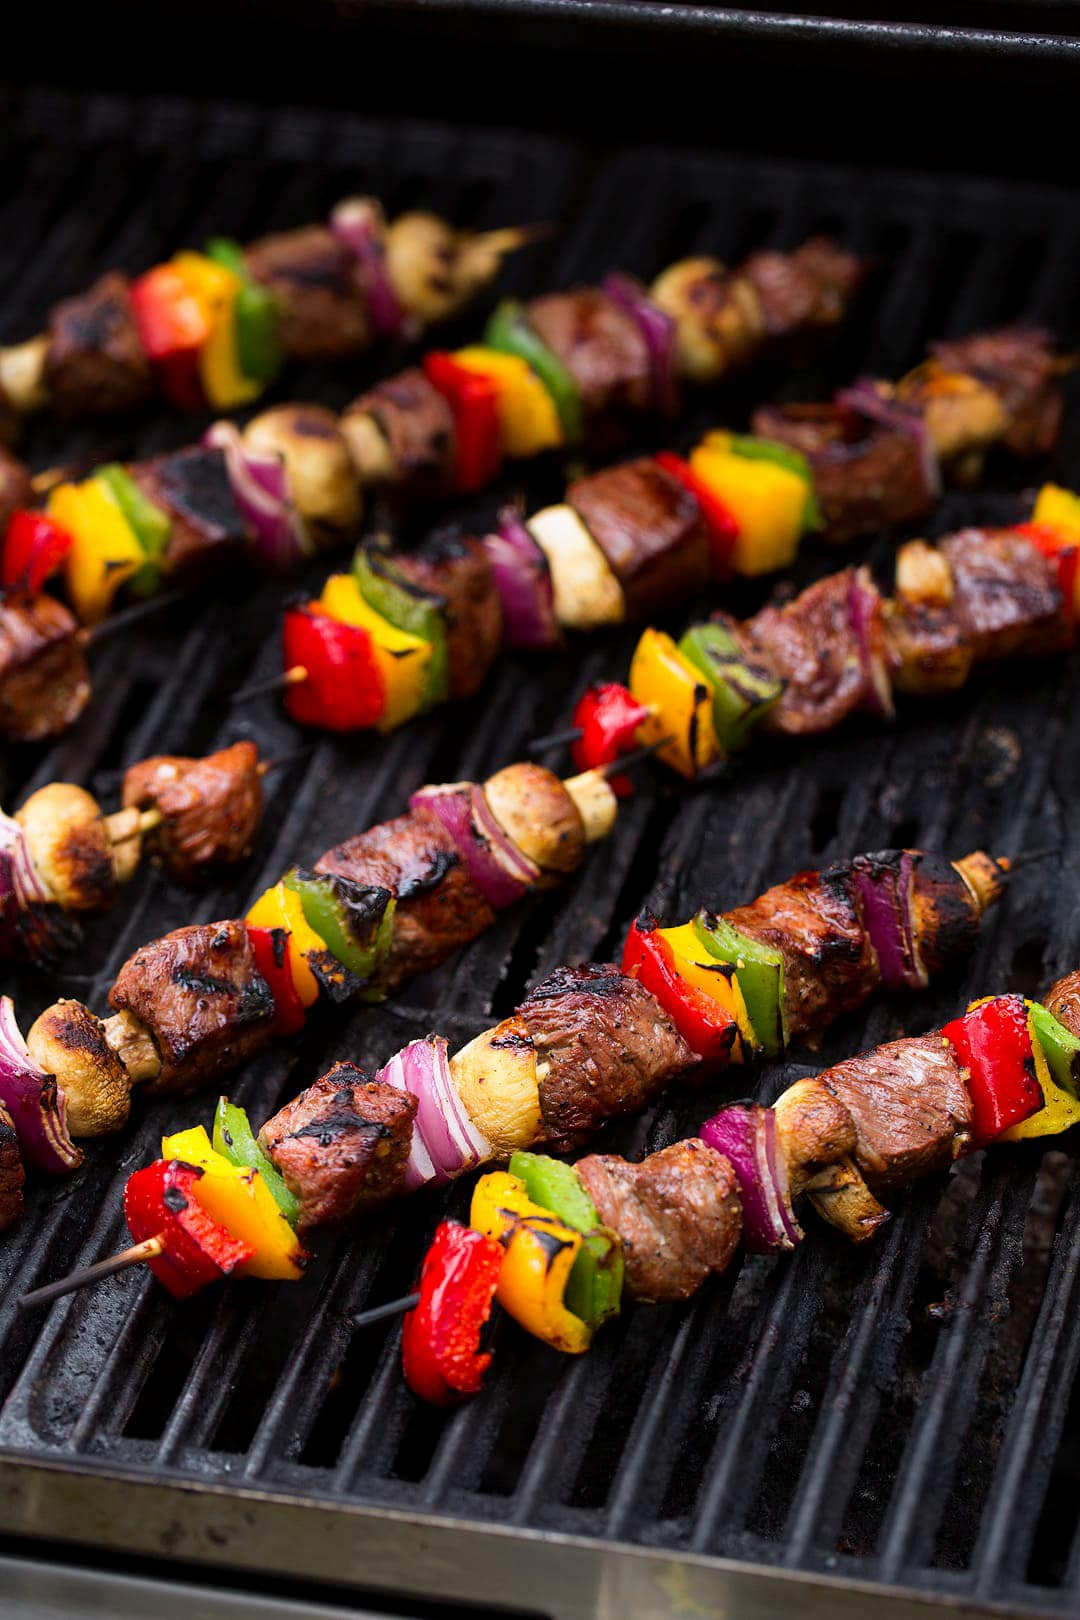 Steak skewers on the grill.